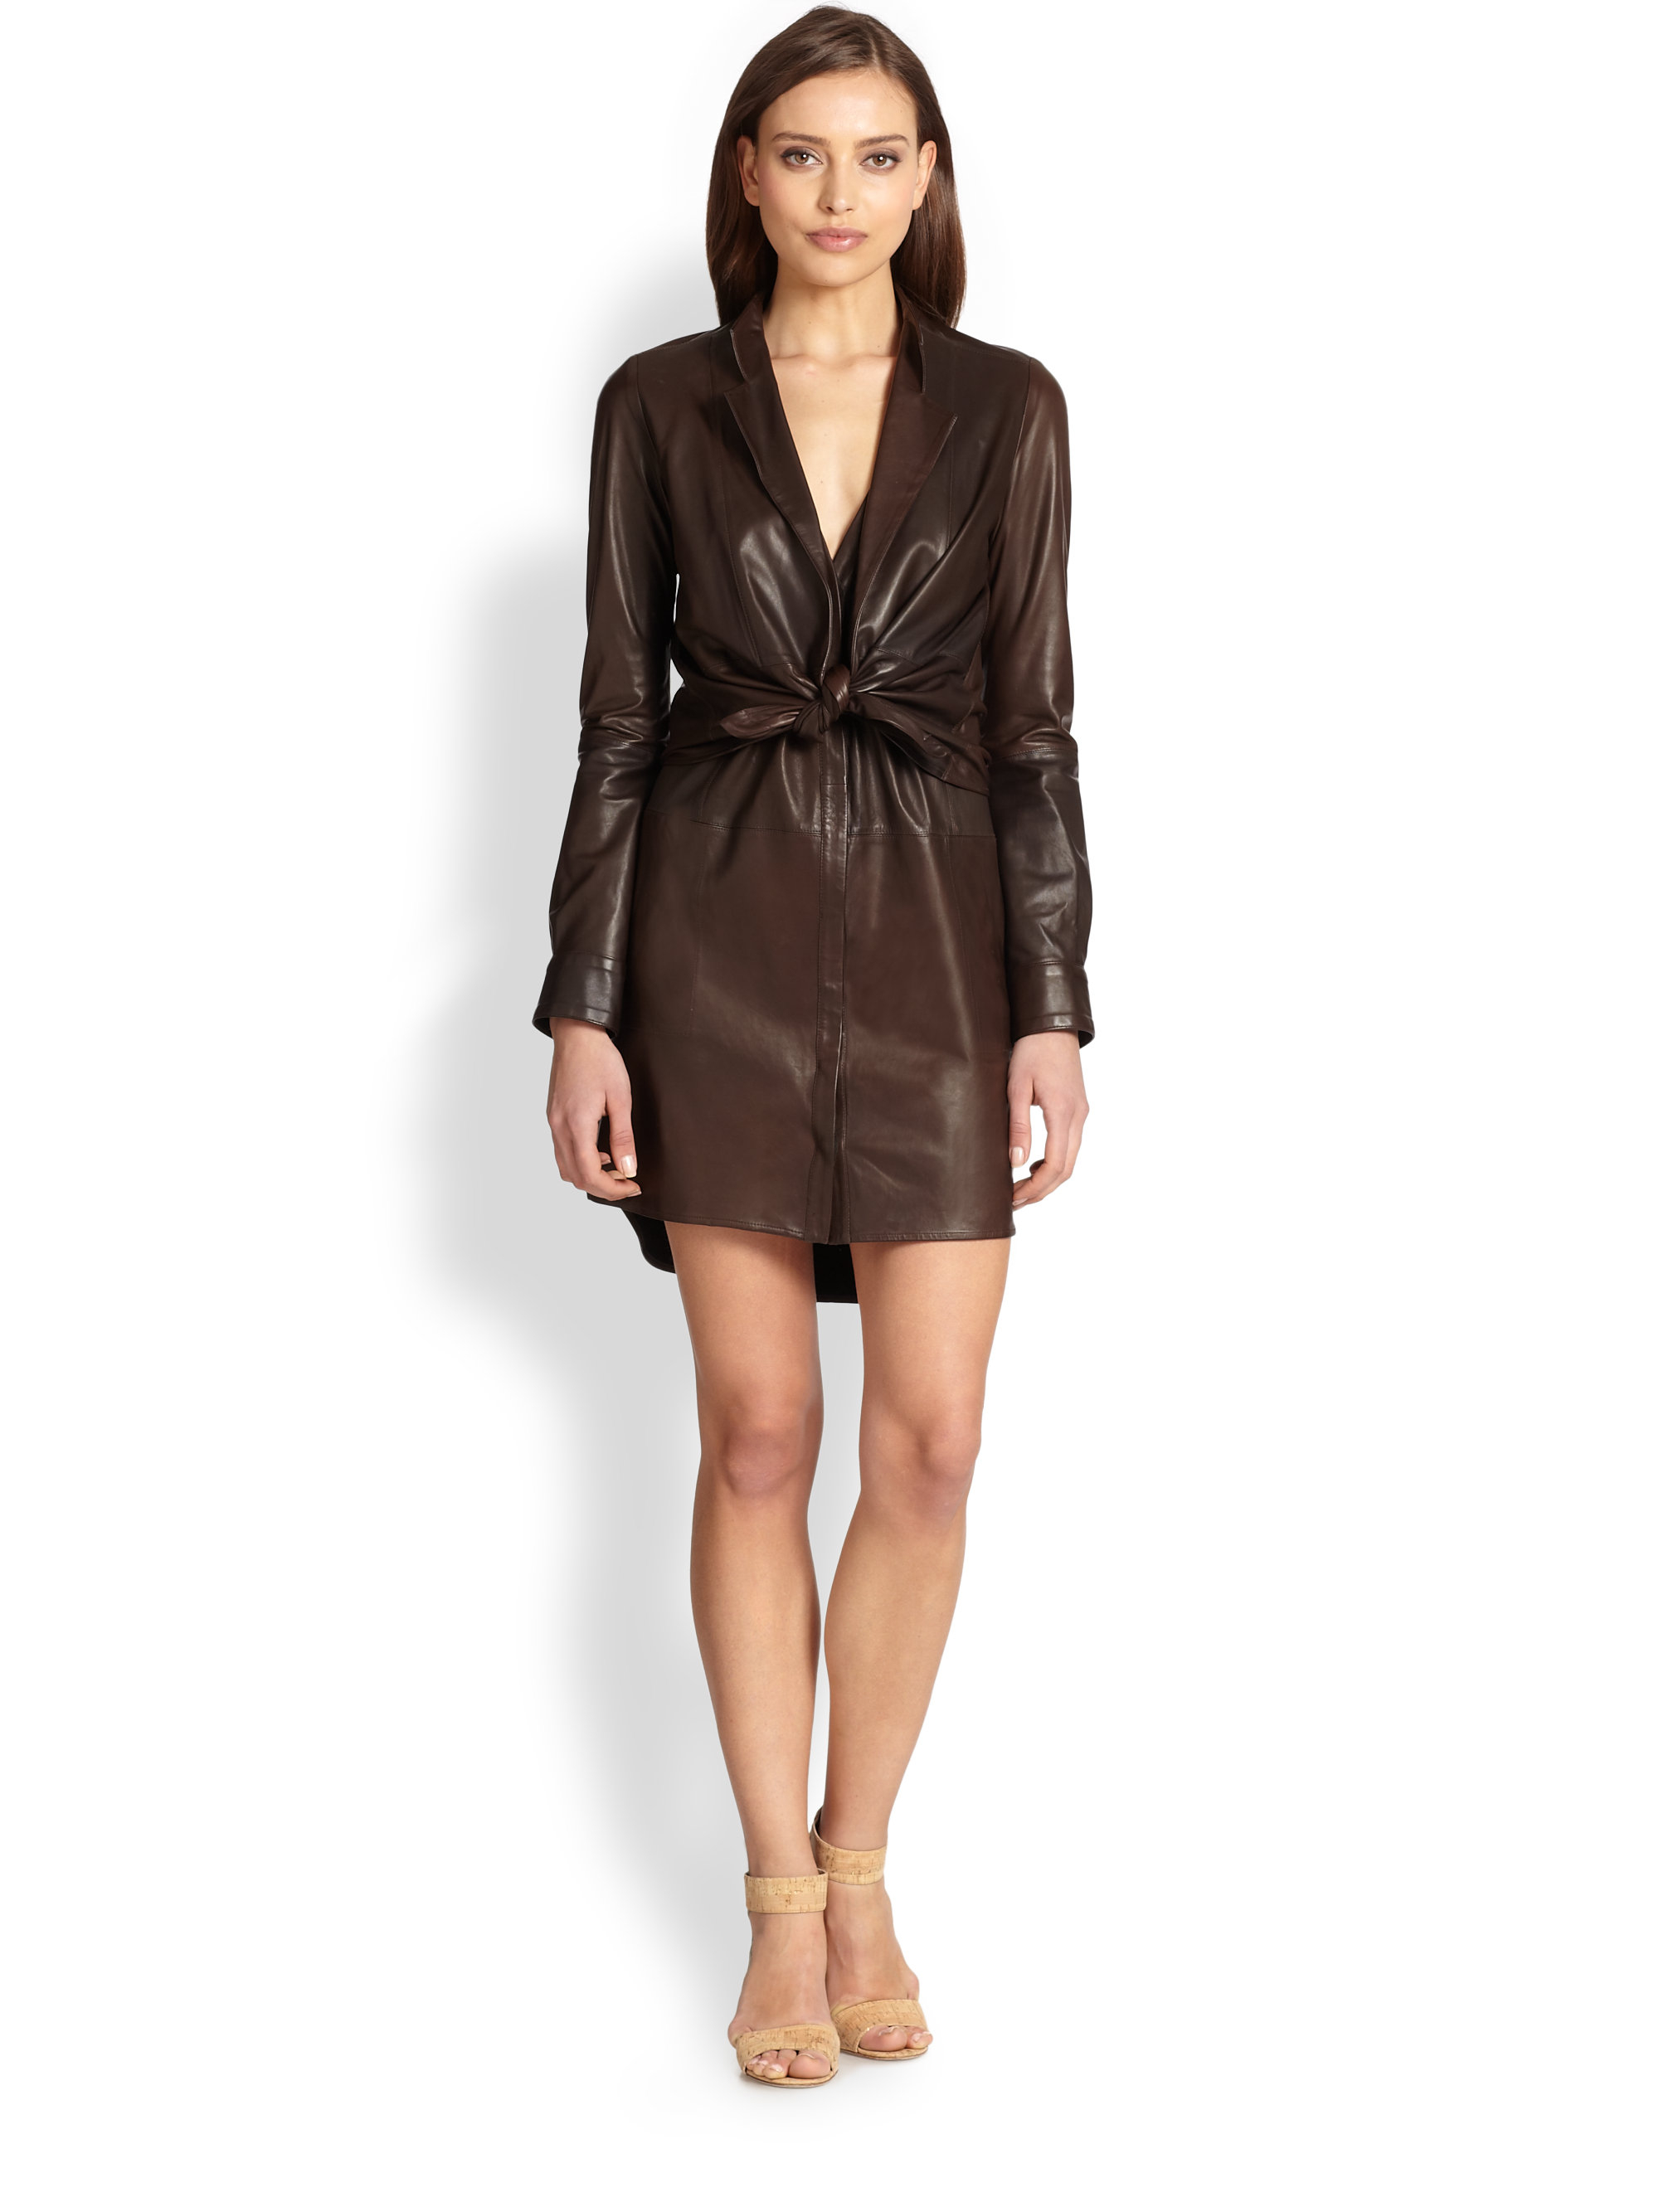 10badd869c Halston Leather Shirtdress in Brown - Lyst